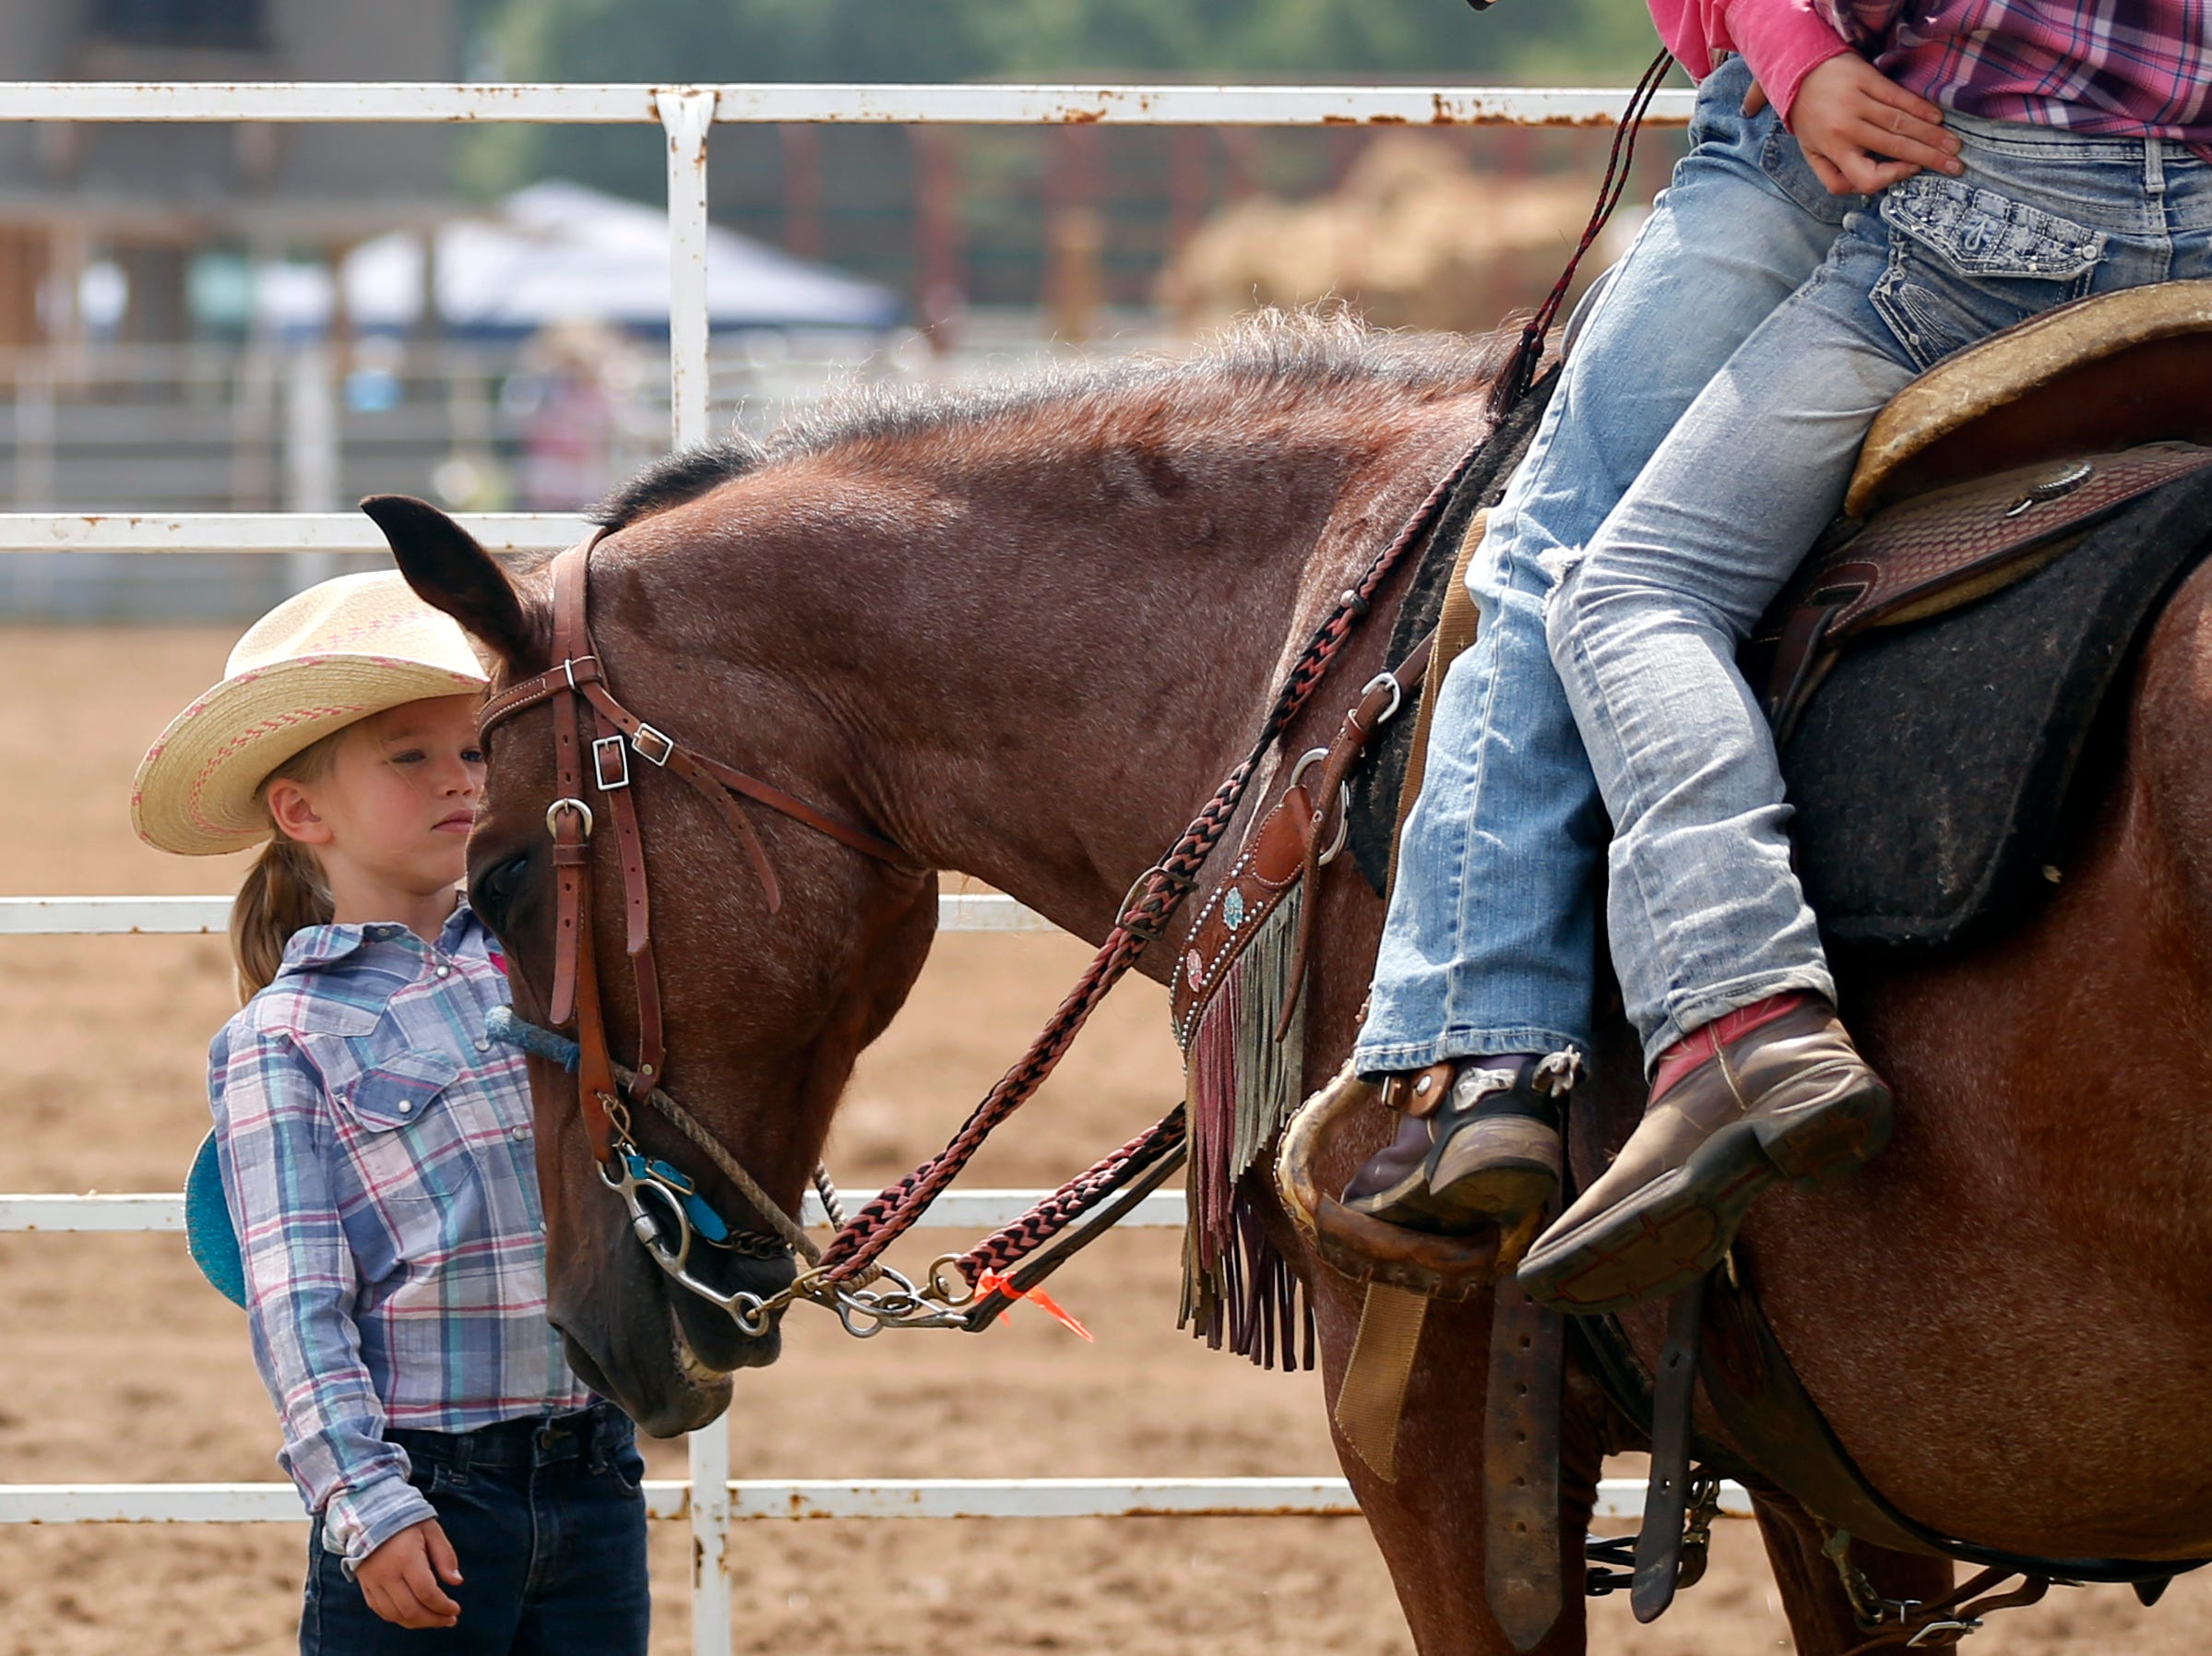 Girls hang out around a horse during the Amherst Little Britches Wisconsin Rodeo in Amherst, Wis., August 17, 2018.